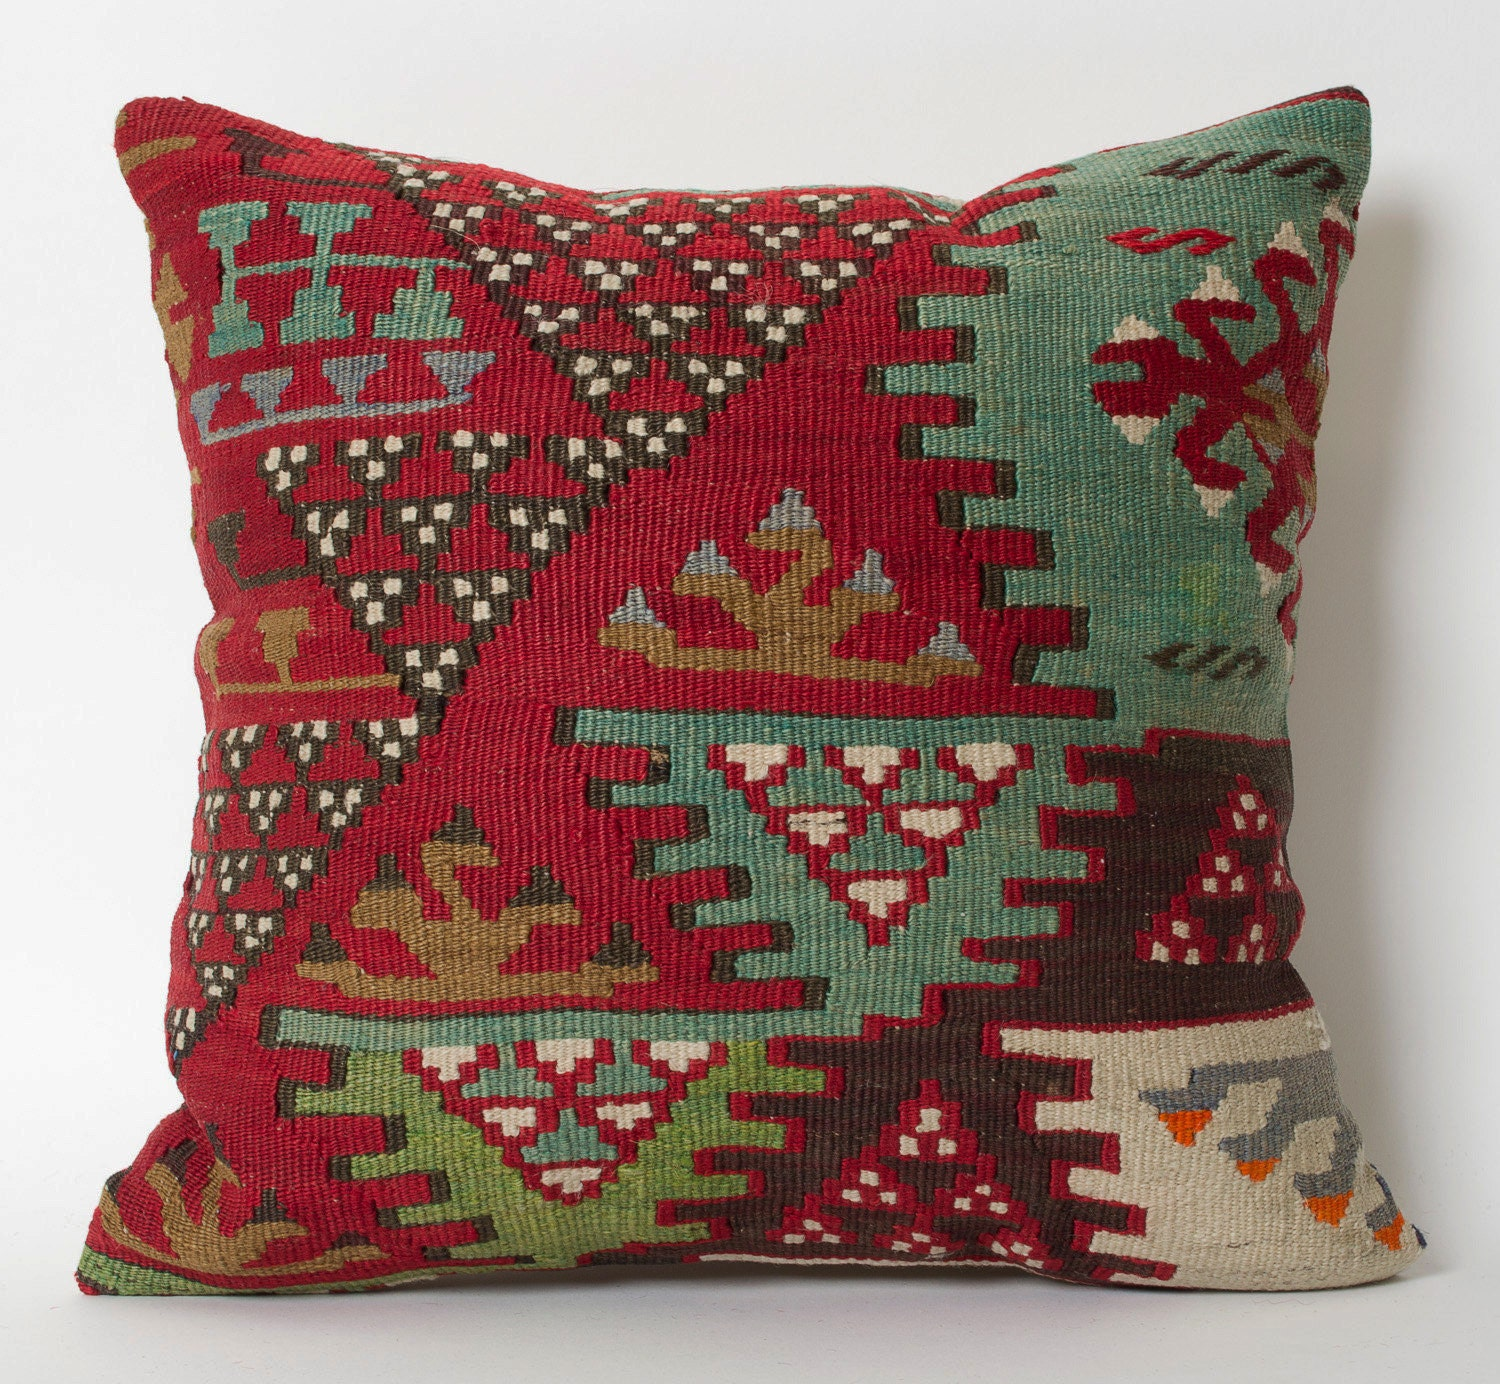 Decorative Pillows Kilim : Kilim Pillow Cover Decorative Kilim Pillows Tribal Pillow